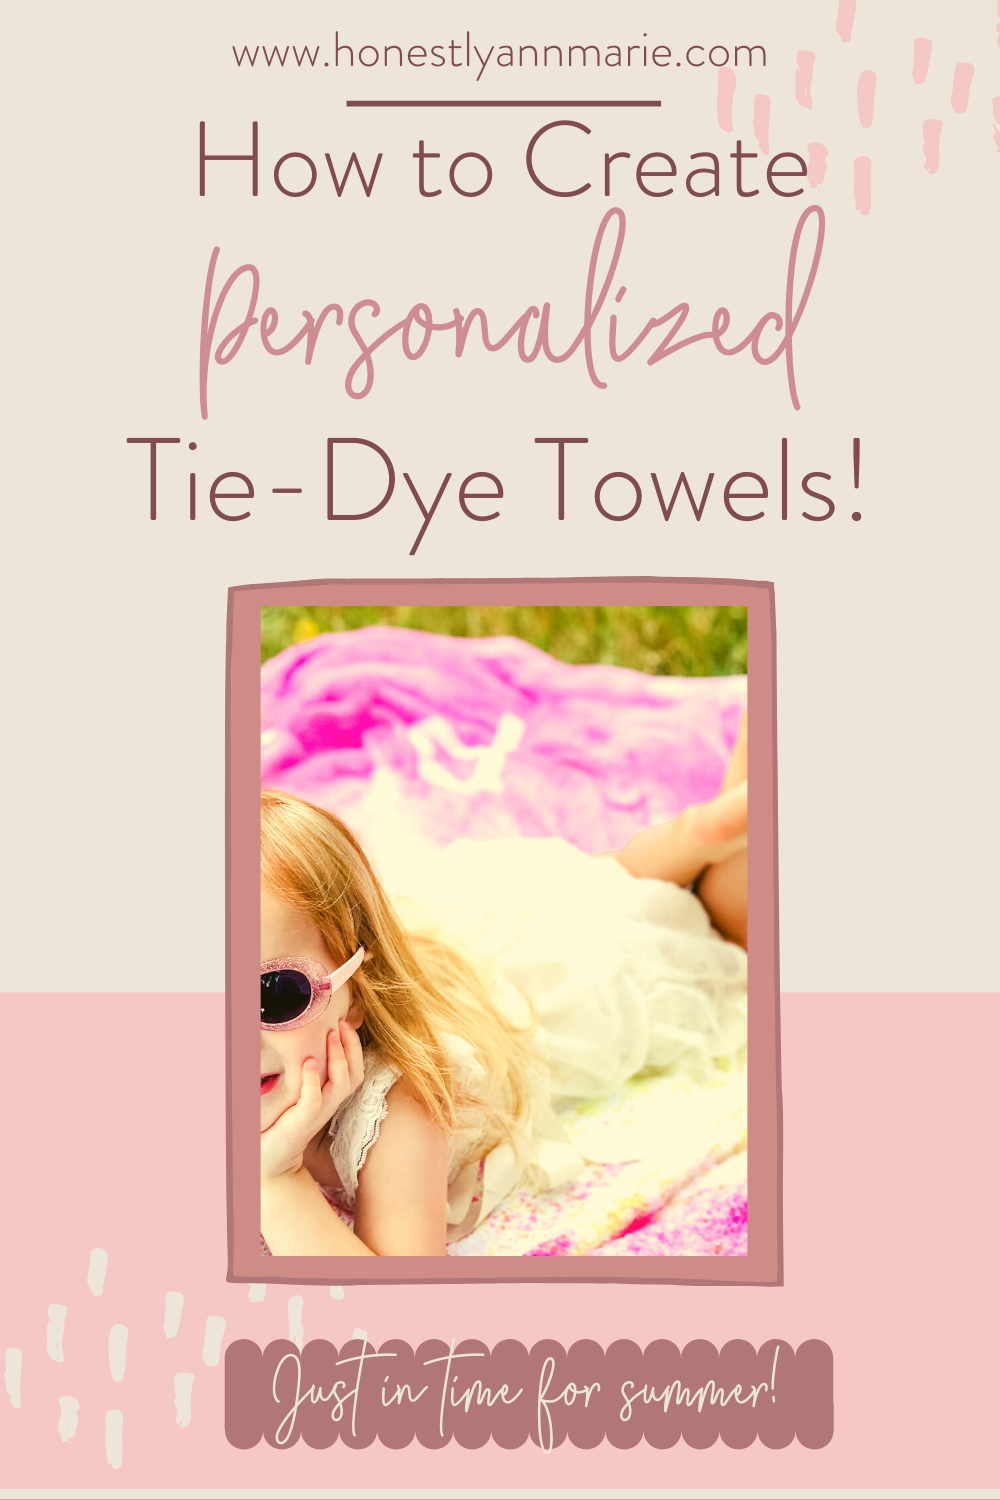 This tie-dye activity is PERFECT in preparation for all of your summer adventuring with kids! You and your family will have a wonderful time creating them, and it'll solve the fighting over towels during those beach and pool days! Enjoy! Tie dye activity, tie dye towels, white towels, diy crafting, diy towels, beach towels, activities with kids